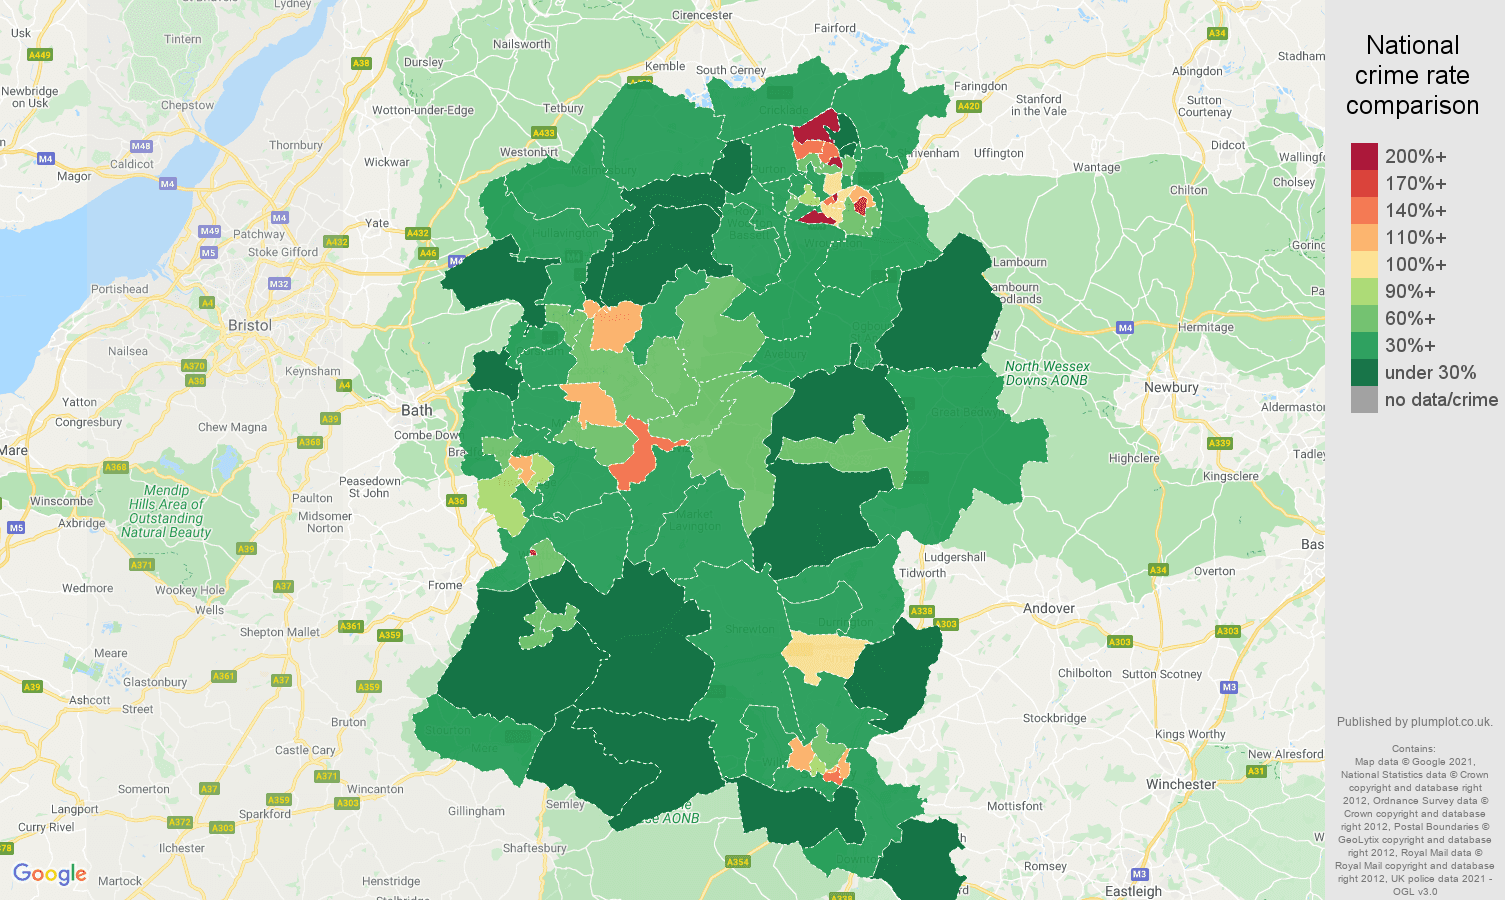 Wiltshire antisocial behaviour crime rate comparison map